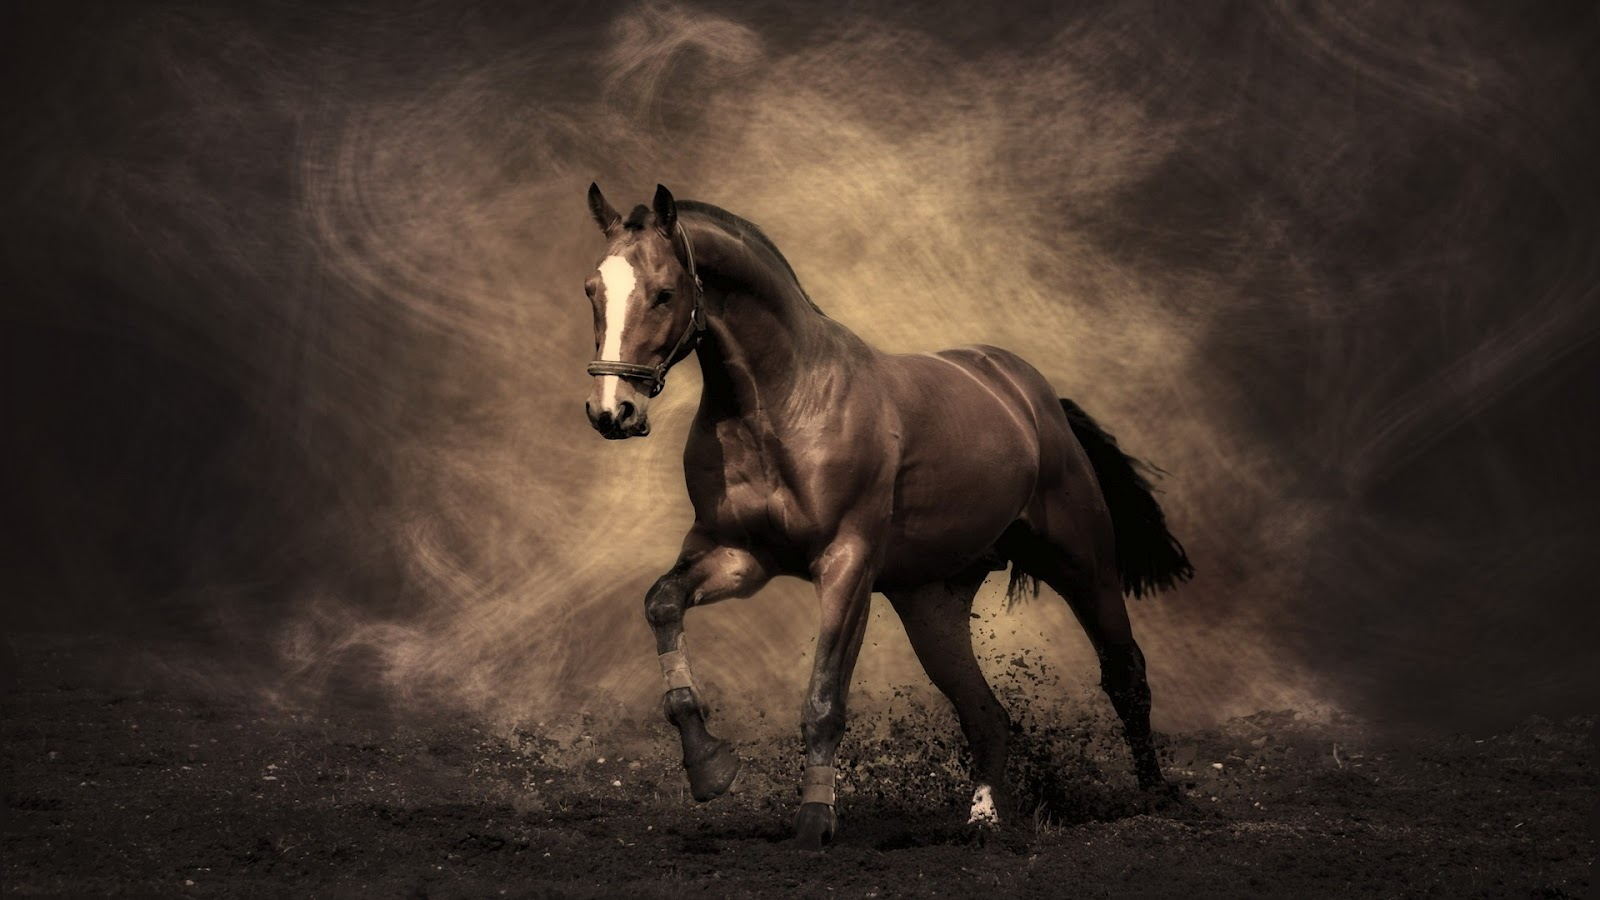 Cool   Wallpaper Horse High Quality - Wonderfull+Painted+Horse  Photograph_312474.jpg